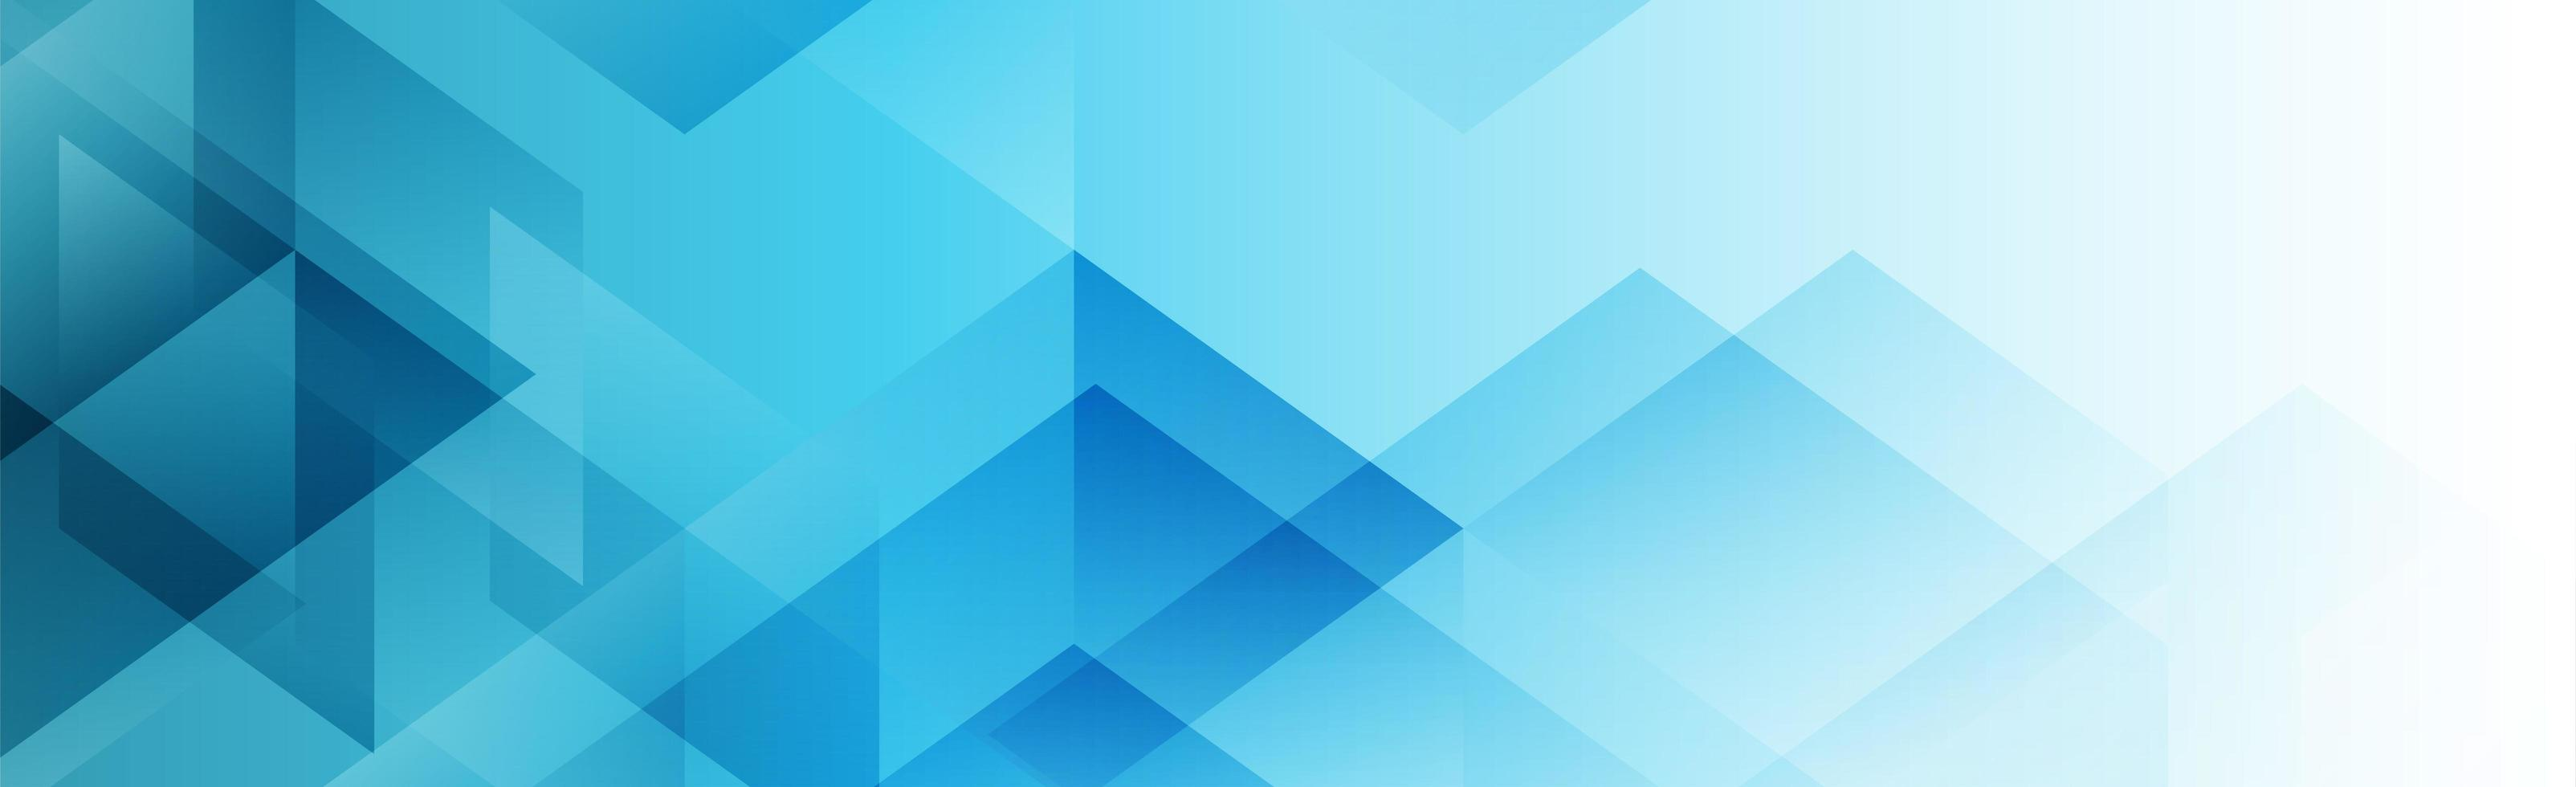 Abstract Polygonal Banner Background 701690   Download 3208x980